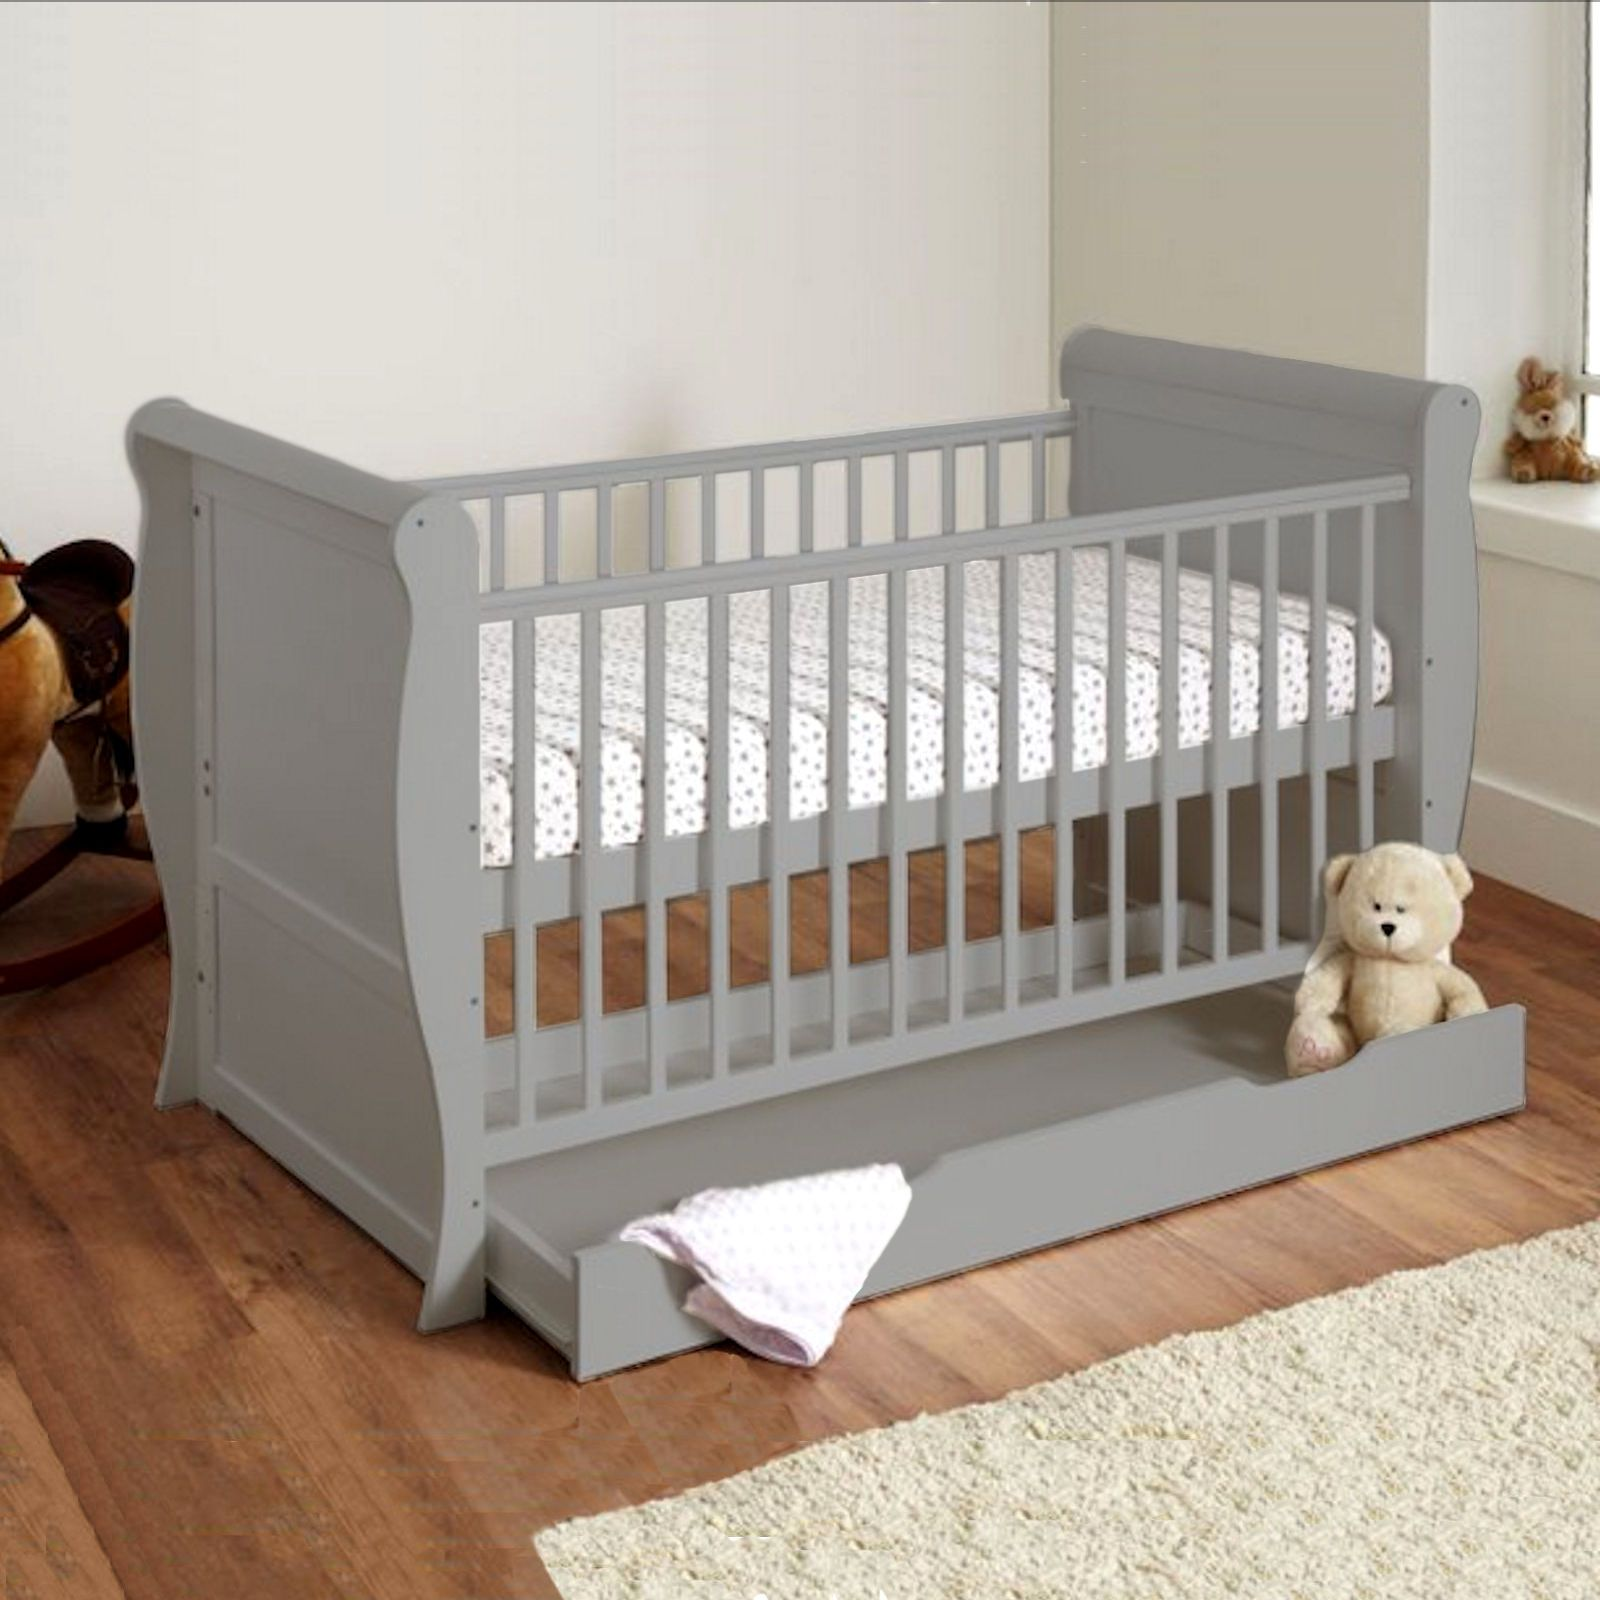 4baby 3 In 1 Sleigh Cot Bed With Maxi Air Cool Mattress Grey Buy At Online4baby In 2020 Baby Mattress Cool Baby Stuff Sleigh Cot Bed